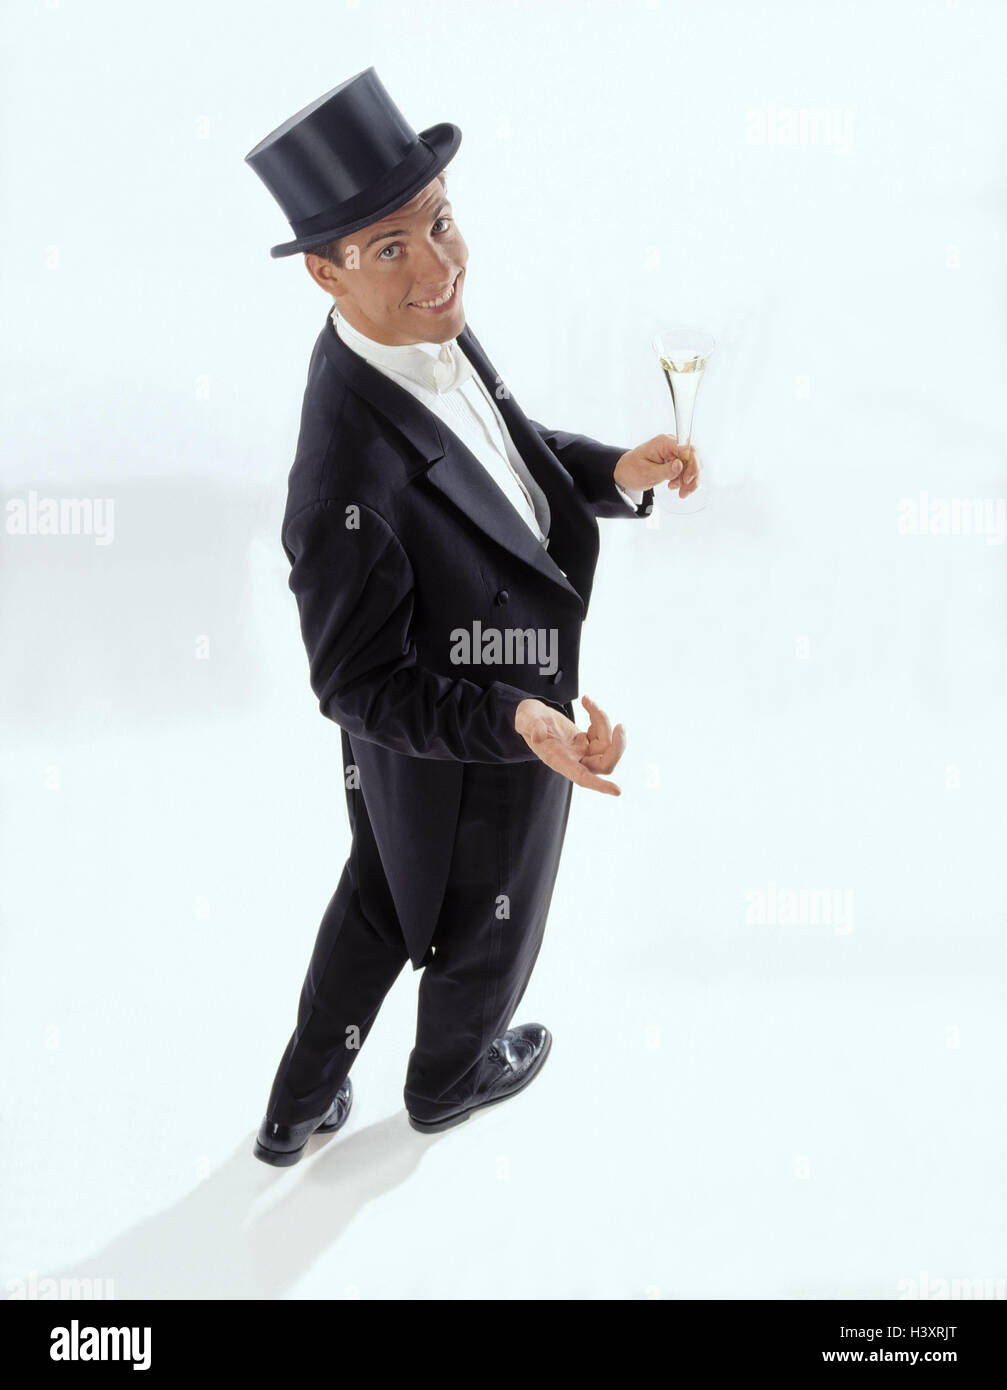 09a899ee834b4 Top Hat And Tails Stock Photos   Top Hat And Tails Stock Images - Alamy